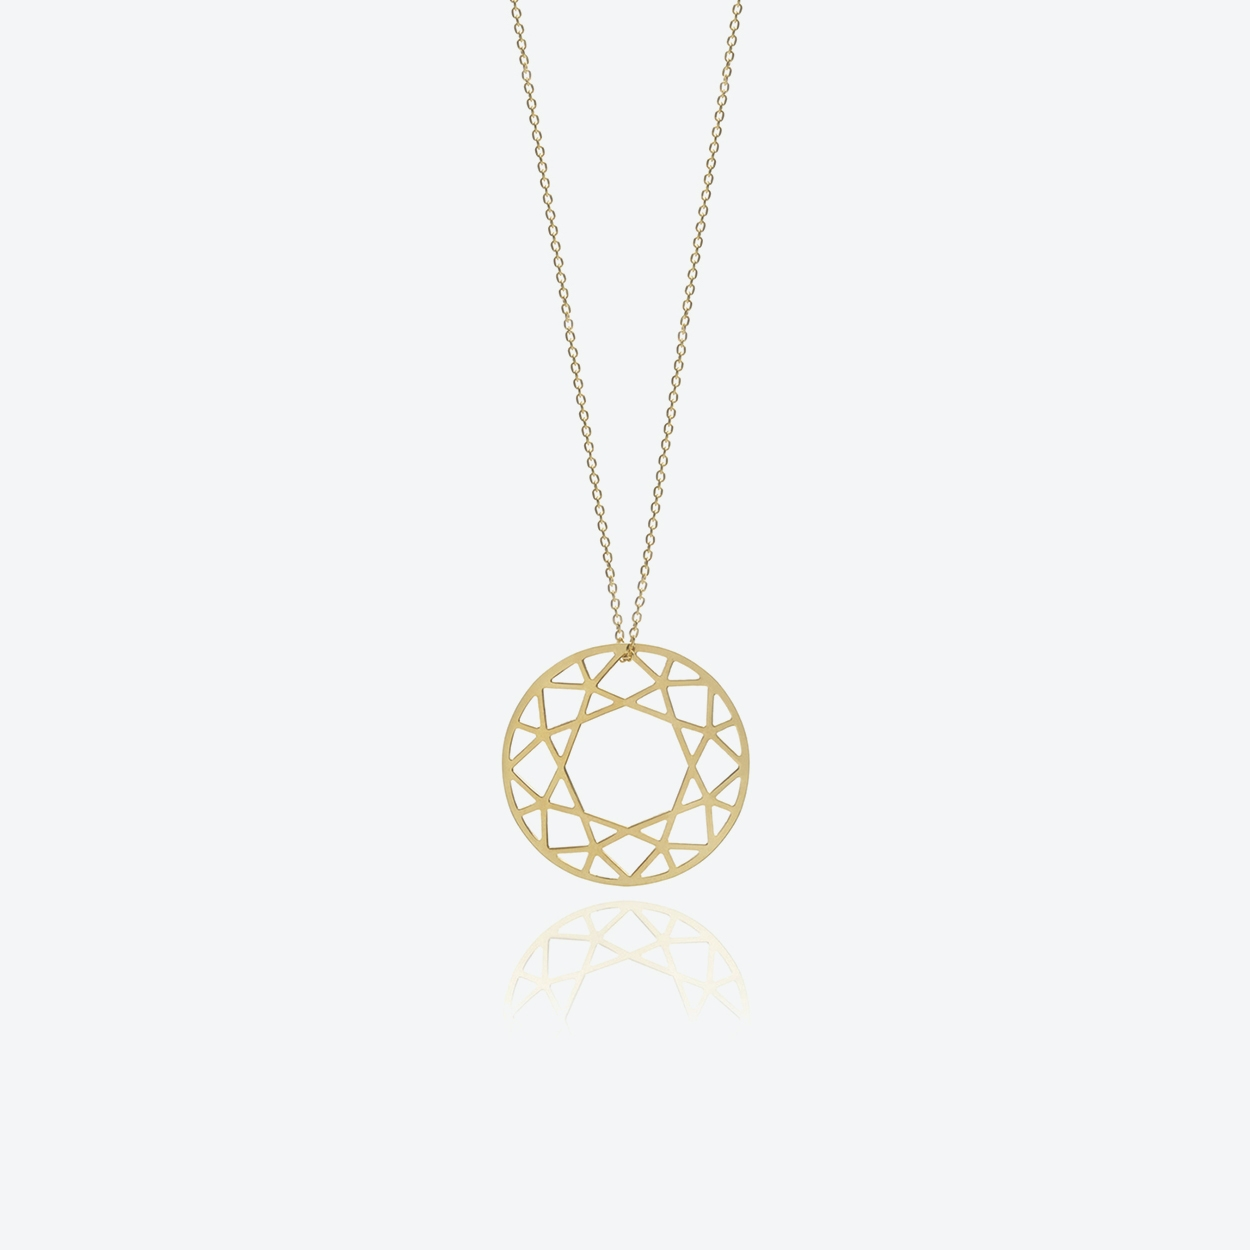 Large Brilliant Diamond Necklace in Gold